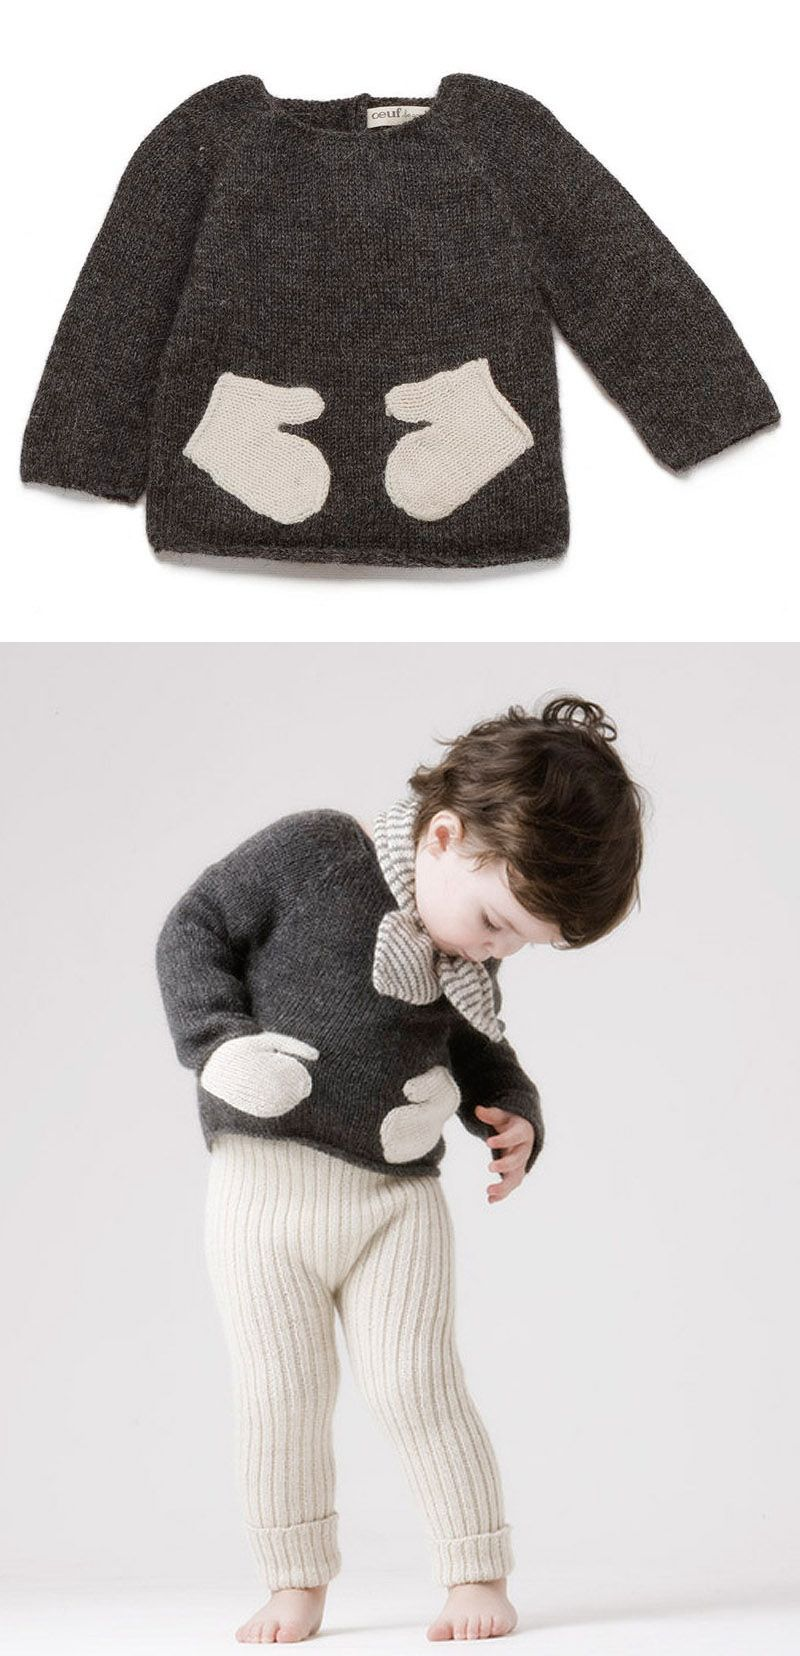 sweater with mitten pockets - DIY idea